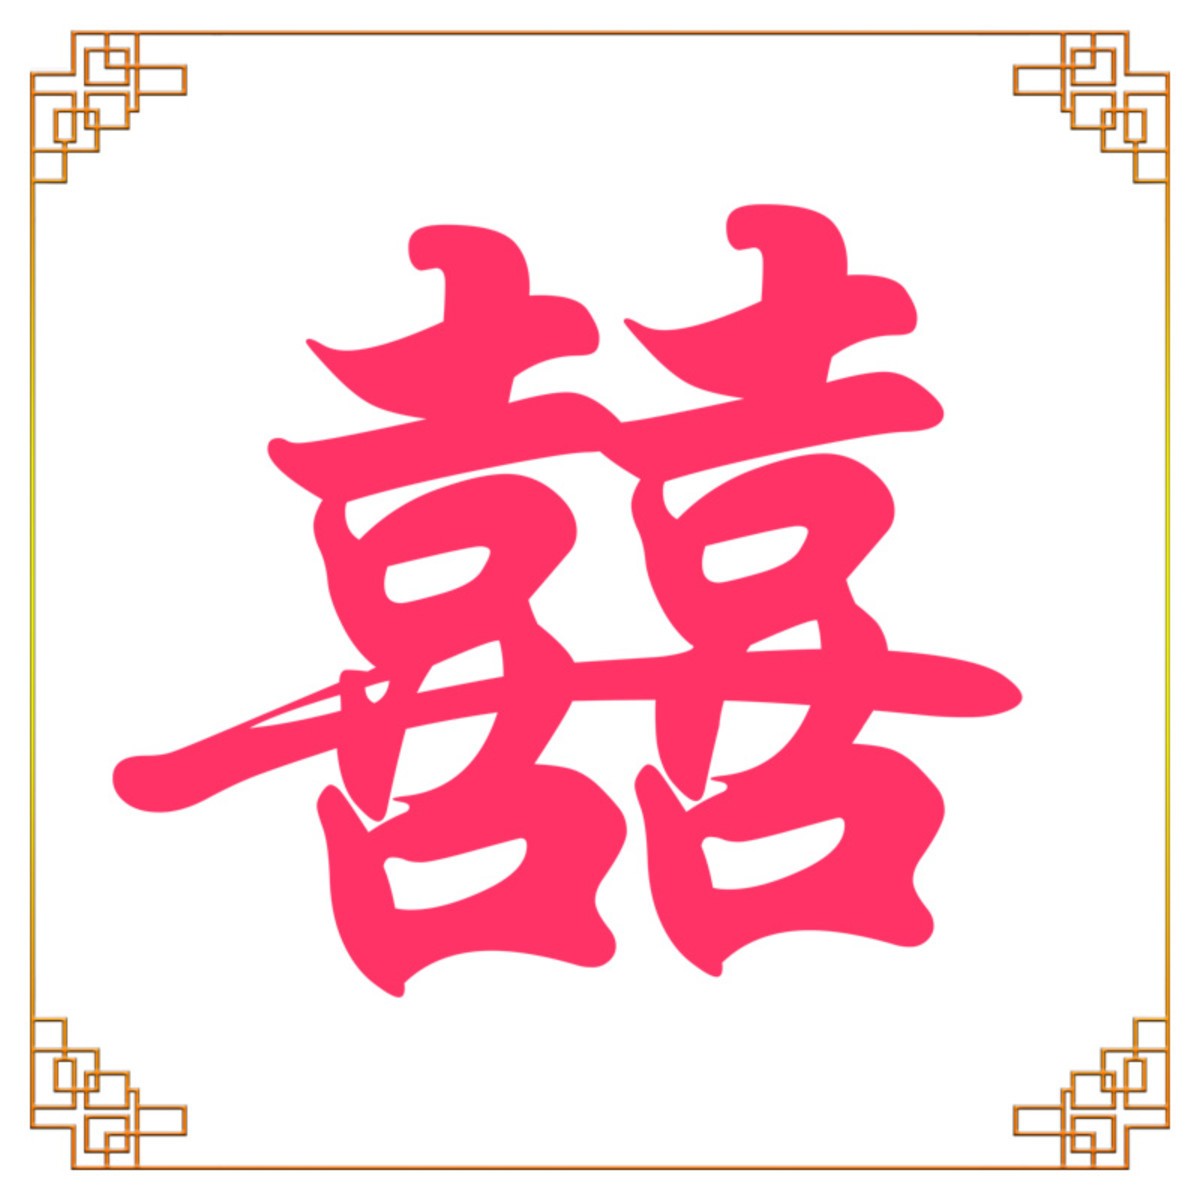 Shuang xi, which means double joy, is the most popular Chinese symbol for love and marital bliss.